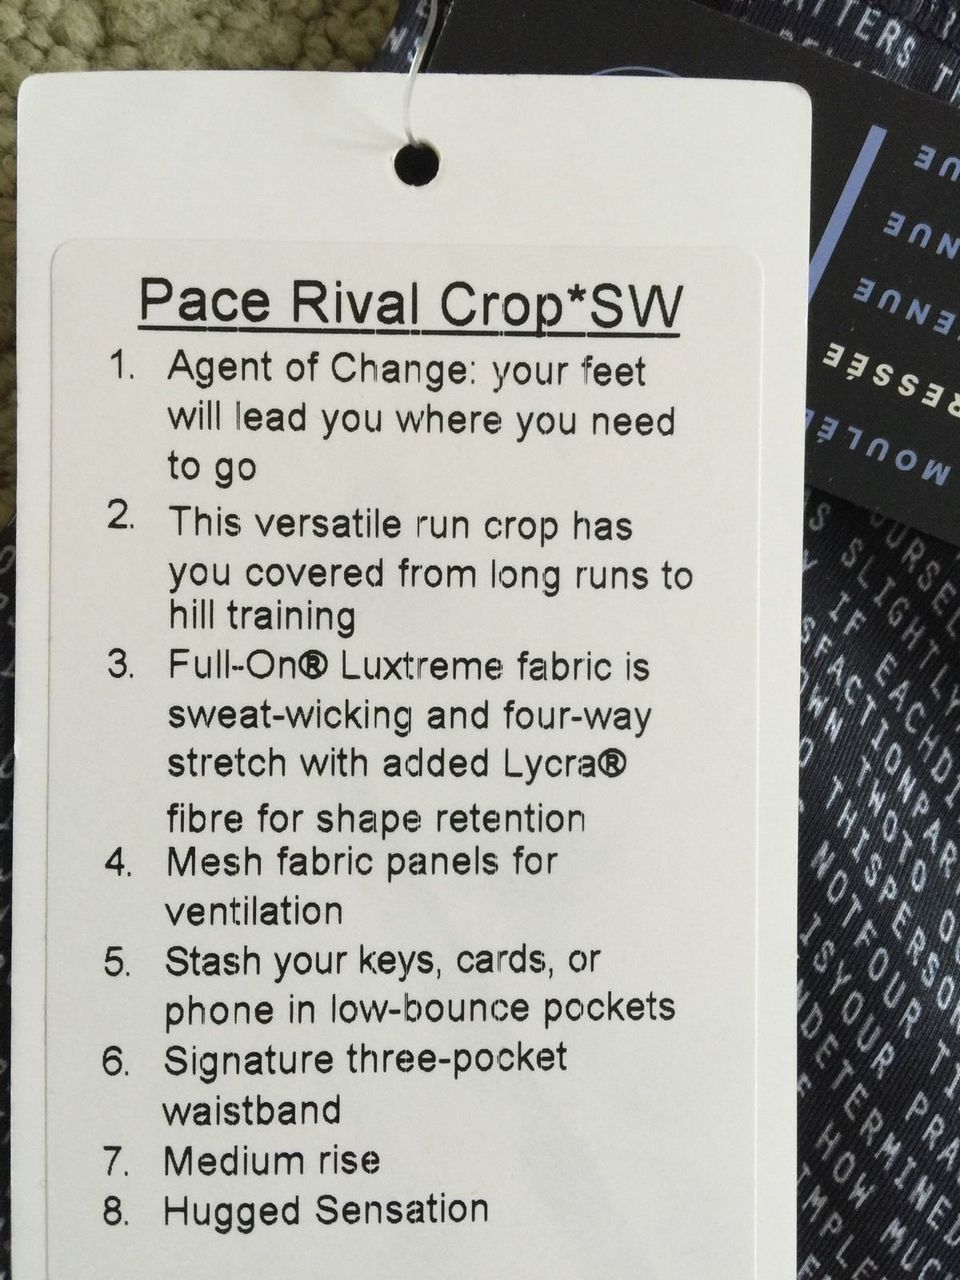 Lululemon Pace Rival Crop - 2016 Seawheeze - Coded Manifesto Black White / Black